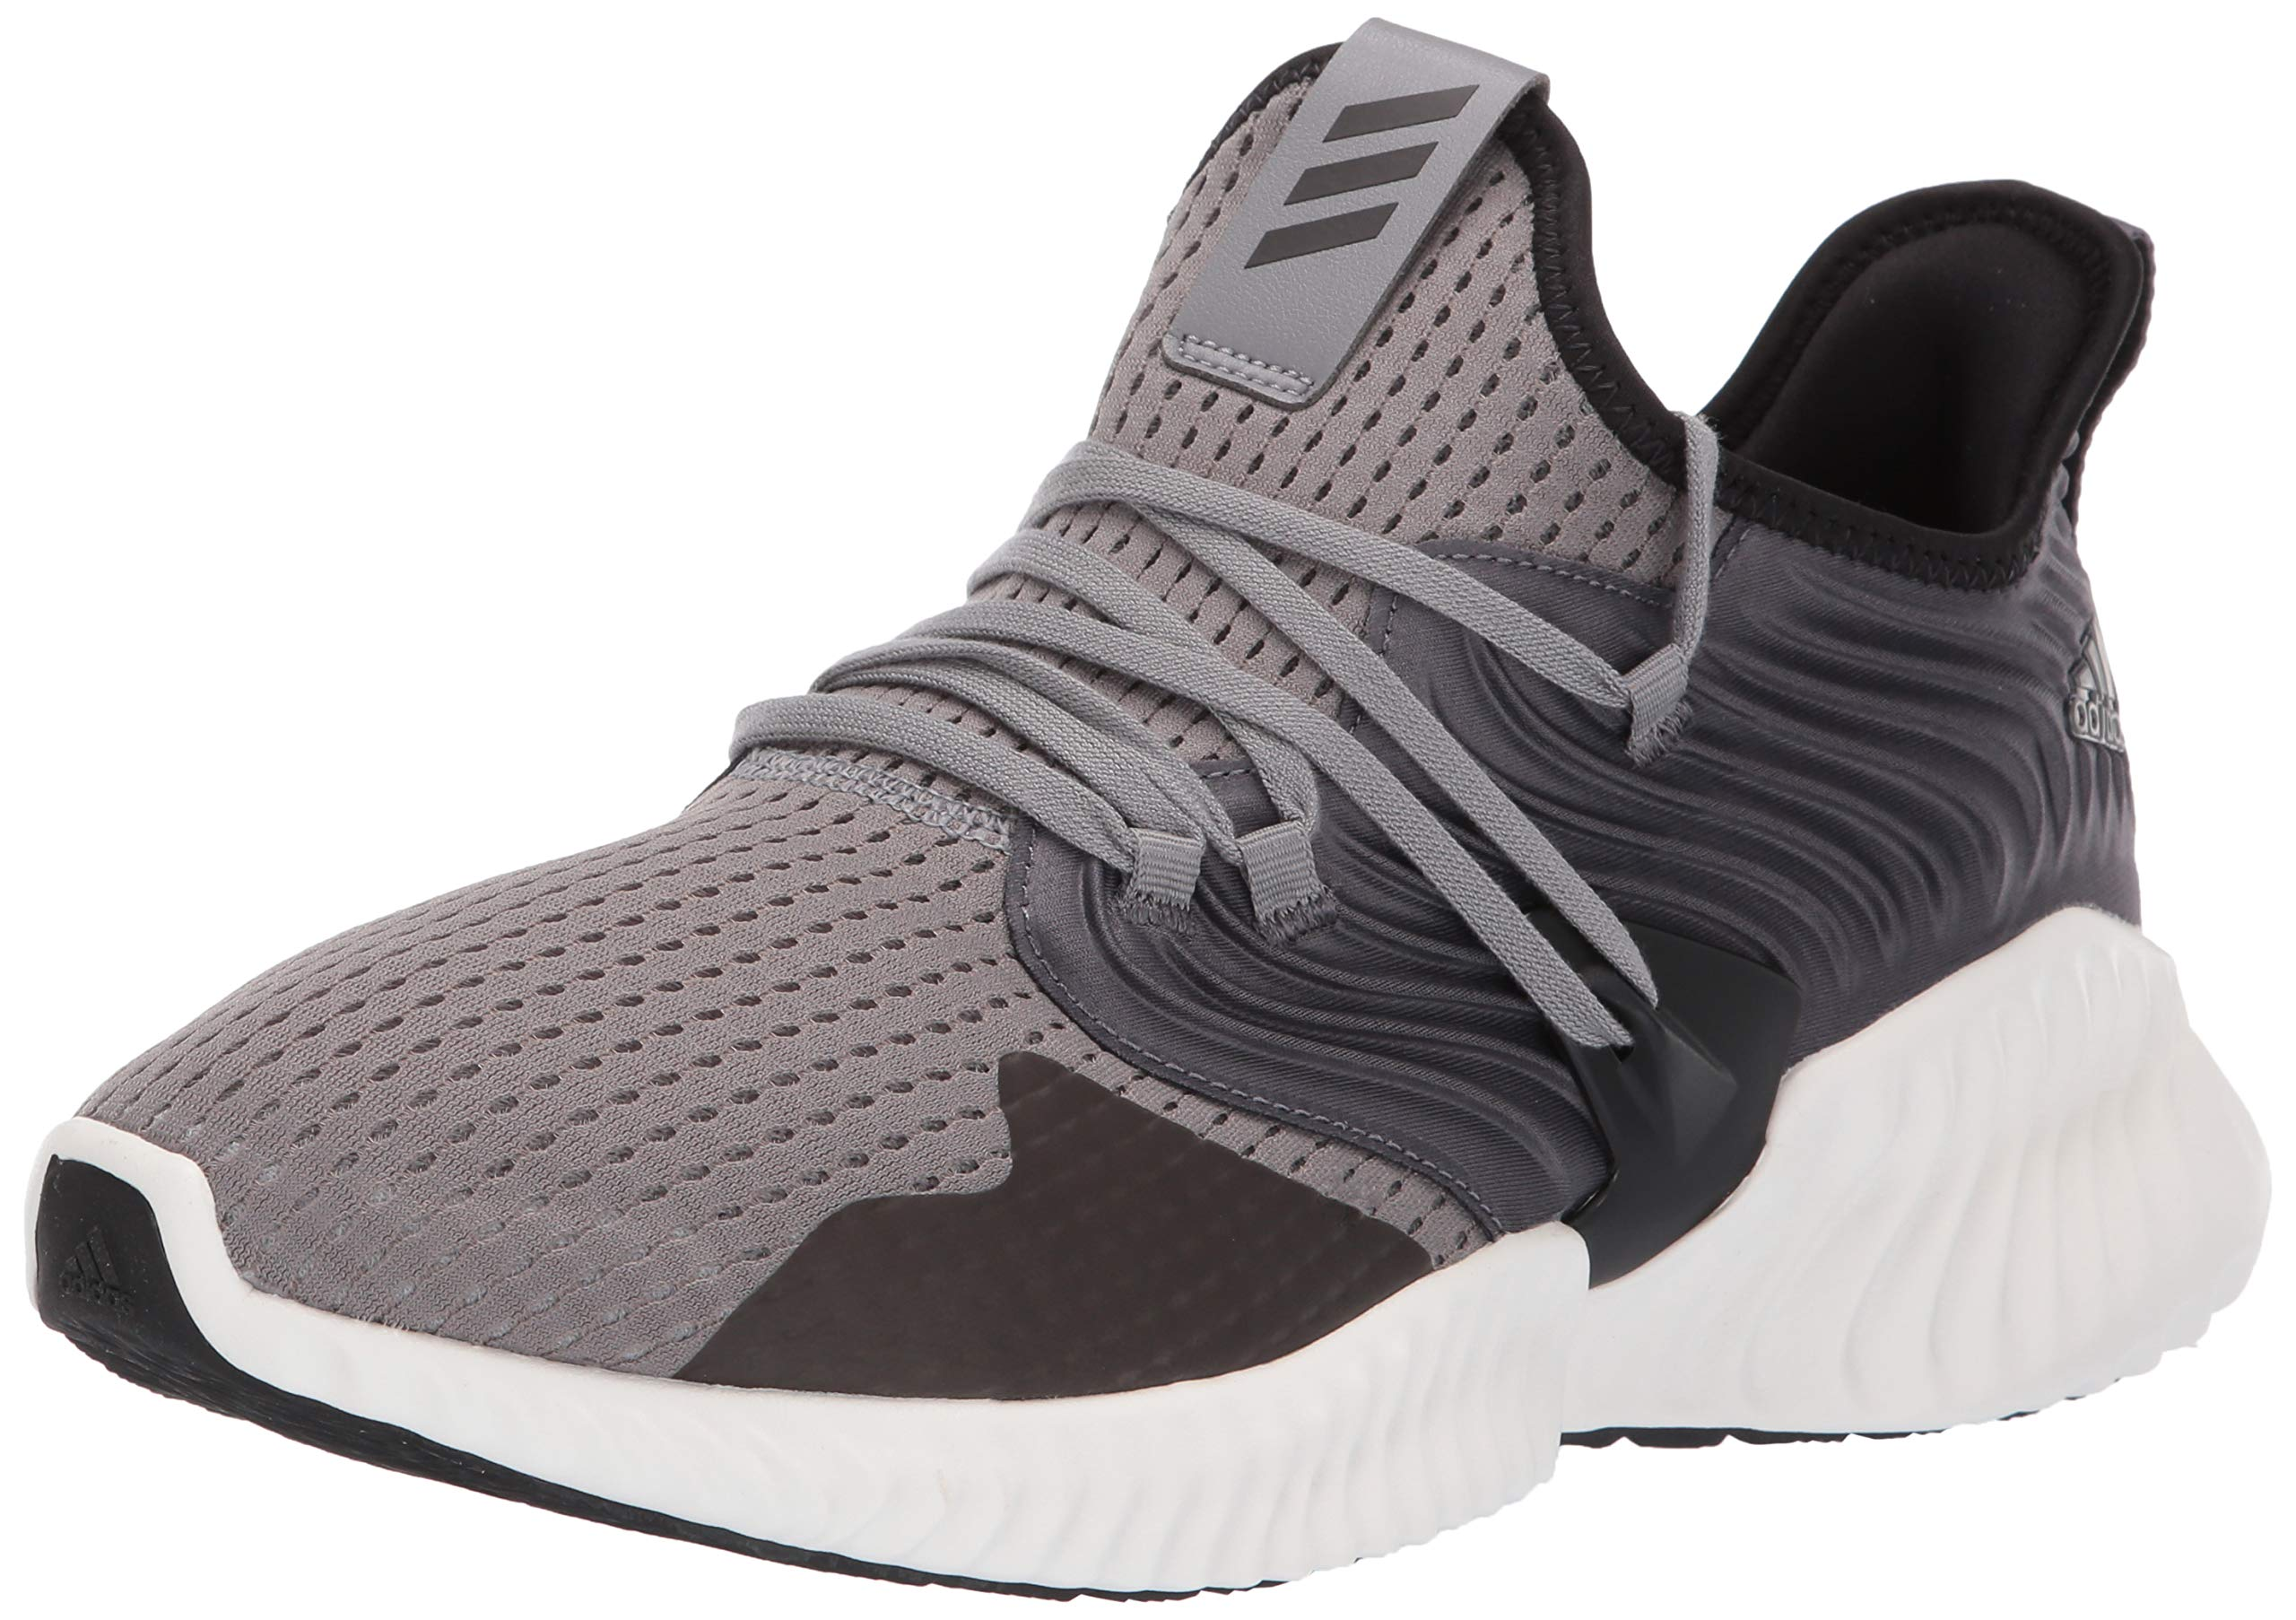 Galleon Adidas Men's Alphabounce Instinct CC, BlackGrey